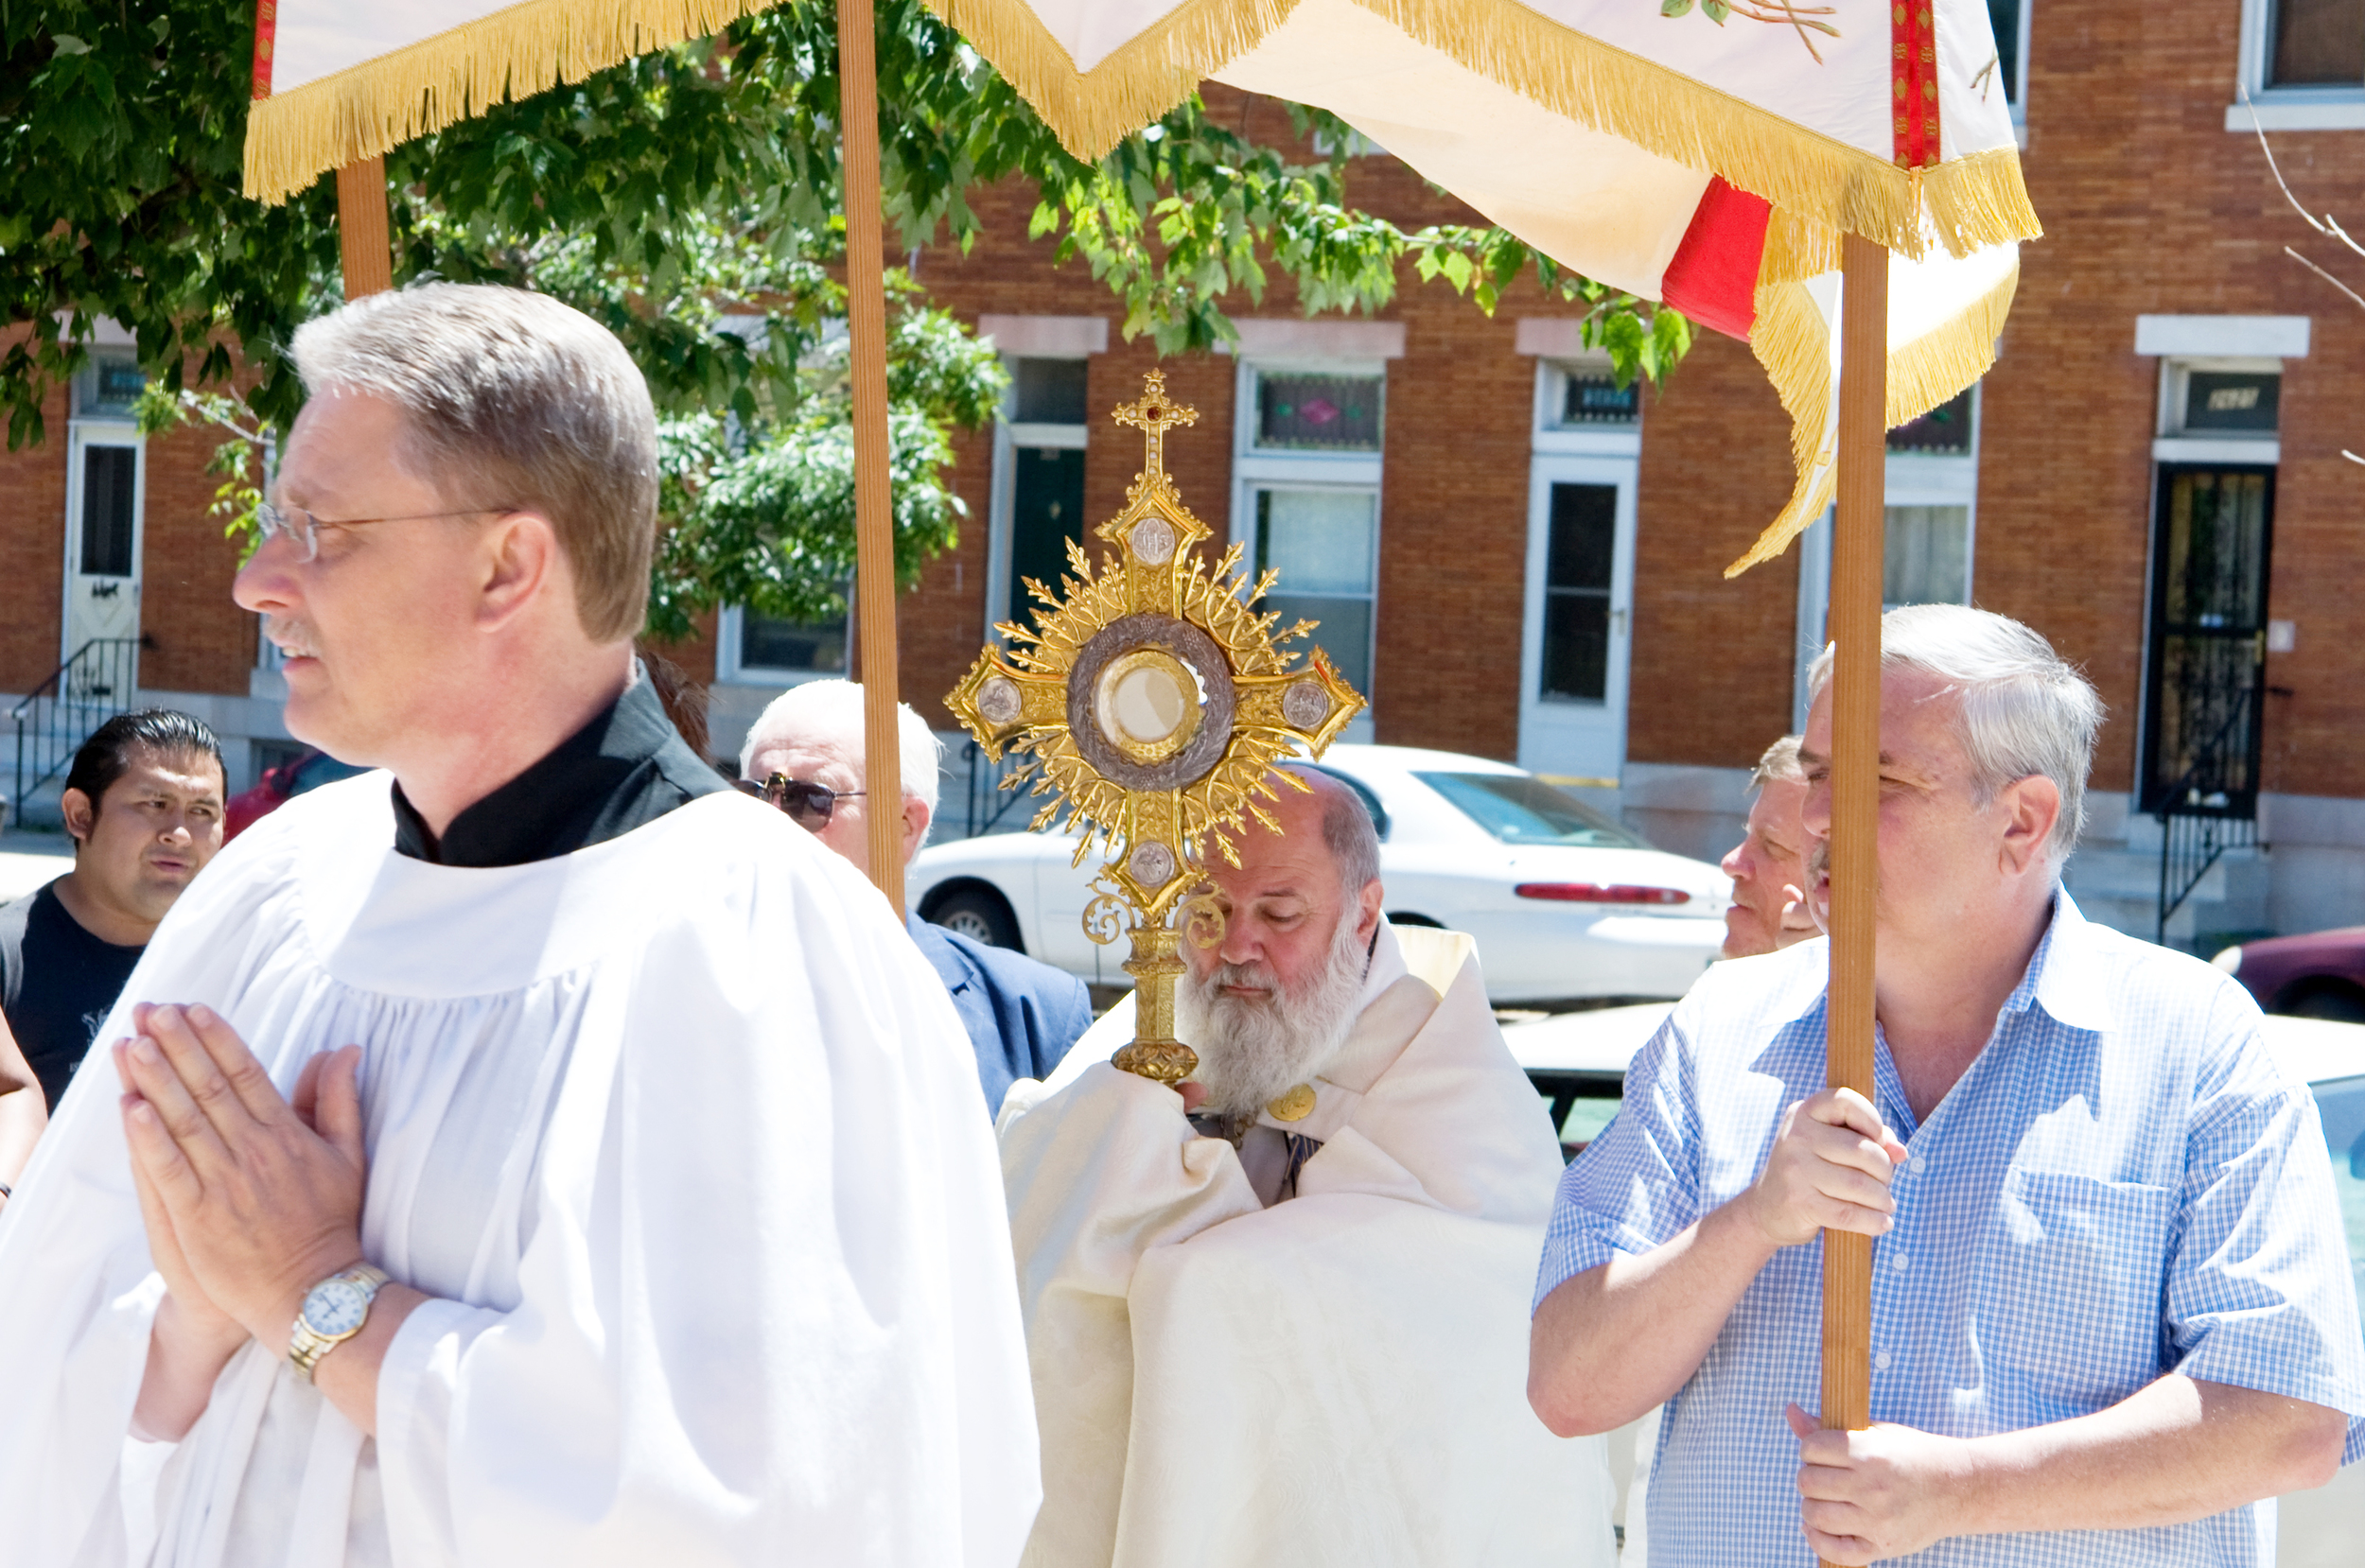 Procession for the Feast of Corpus Christi